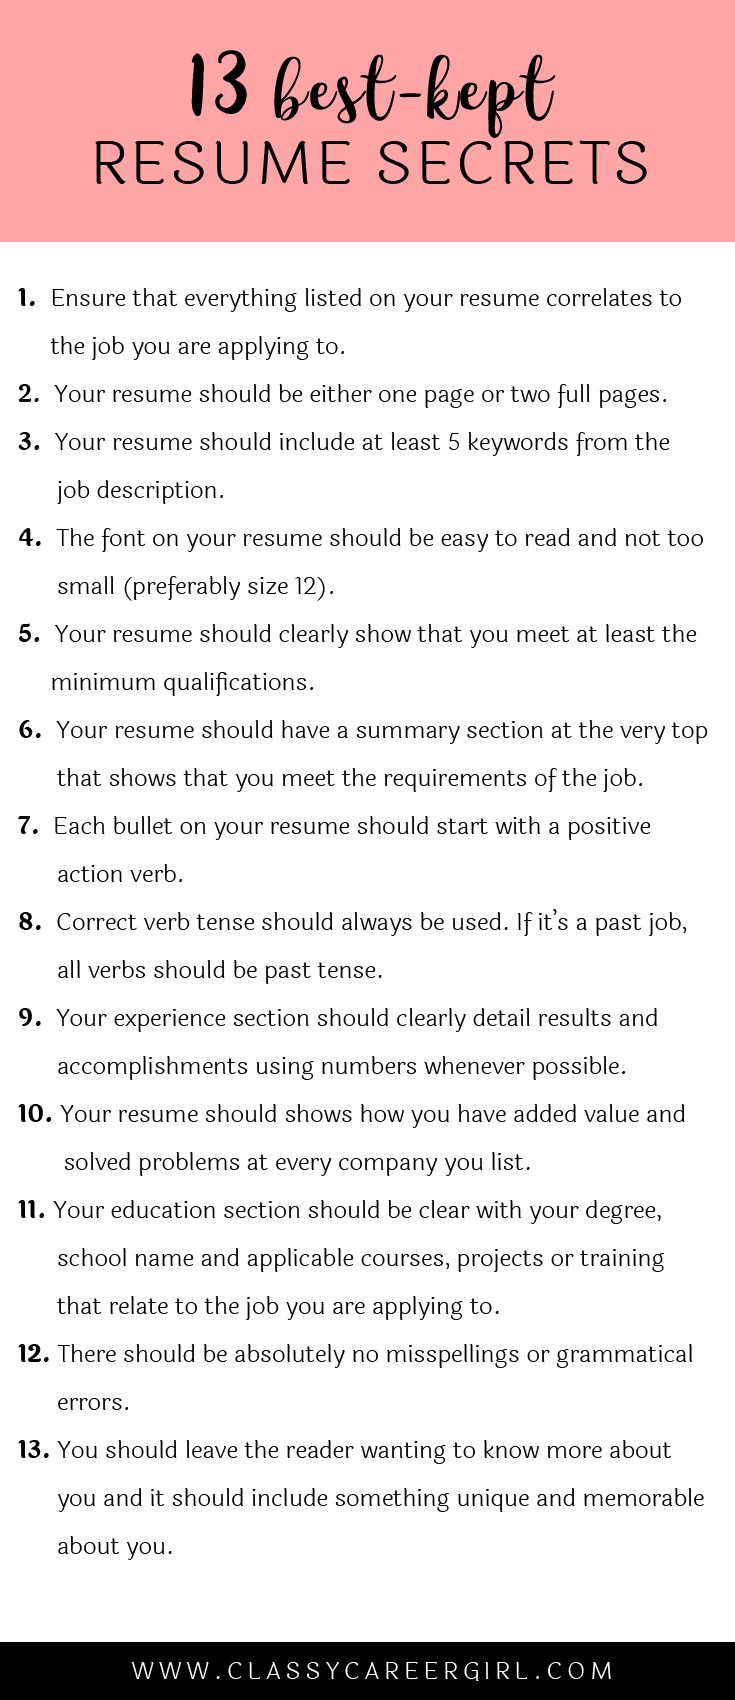 Opposenewapstandardsus  Prepossessing  Ideas About Resume On Pinterest  Cv Format Resume Cv And  With Lovely Some Hiring Managers Will Toss Your Resume Out If You Dont Know These  With Agreeable What To Look For In A Resume Also Experience On A Resume In Addition Ap Style Resume And Programmer Resume Template As Well As Rad Tech Resume Additionally Insurance Underwriter Resume From Pinterestcom With Opposenewapstandardsus  Lovely  Ideas About Resume On Pinterest  Cv Format Resume Cv And  With Agreeable Some Hiring Managers Will Toss Your Resume Out If You Dont Know These  And Prepossessing What To Look For In A Resume Also Experience On A Resume In Addition Ap Style Resume From Pinterestcom